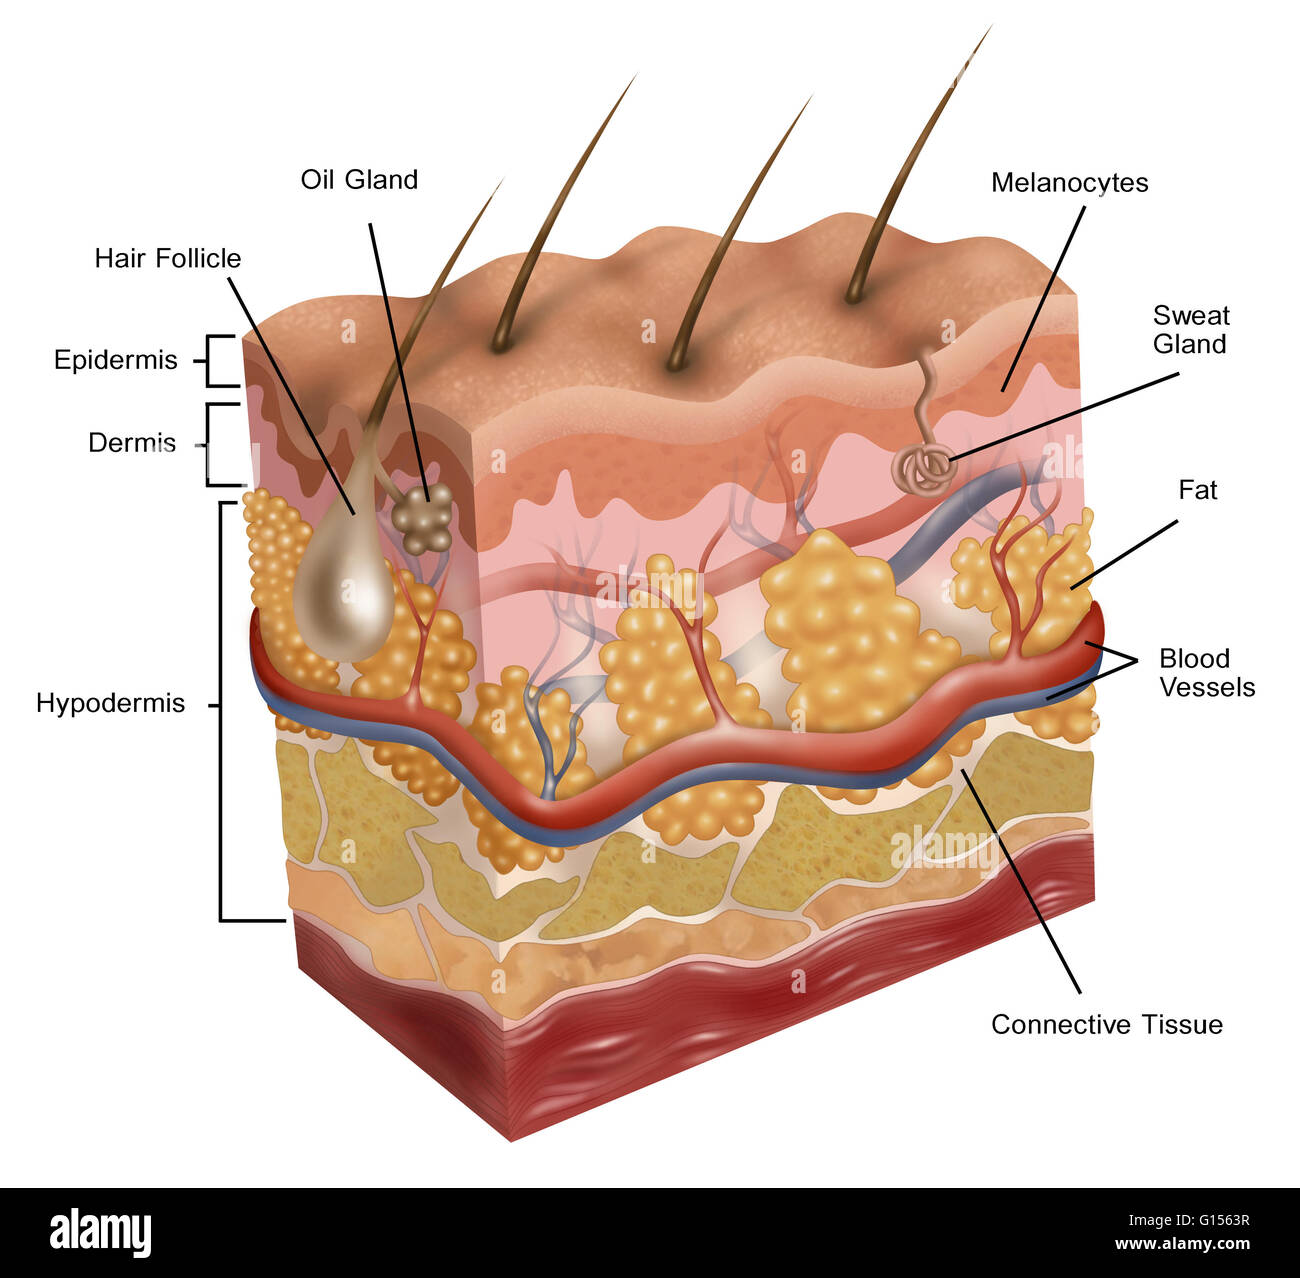 illustration of human skin  this illustration depicts a cross-section,  revealing the layers